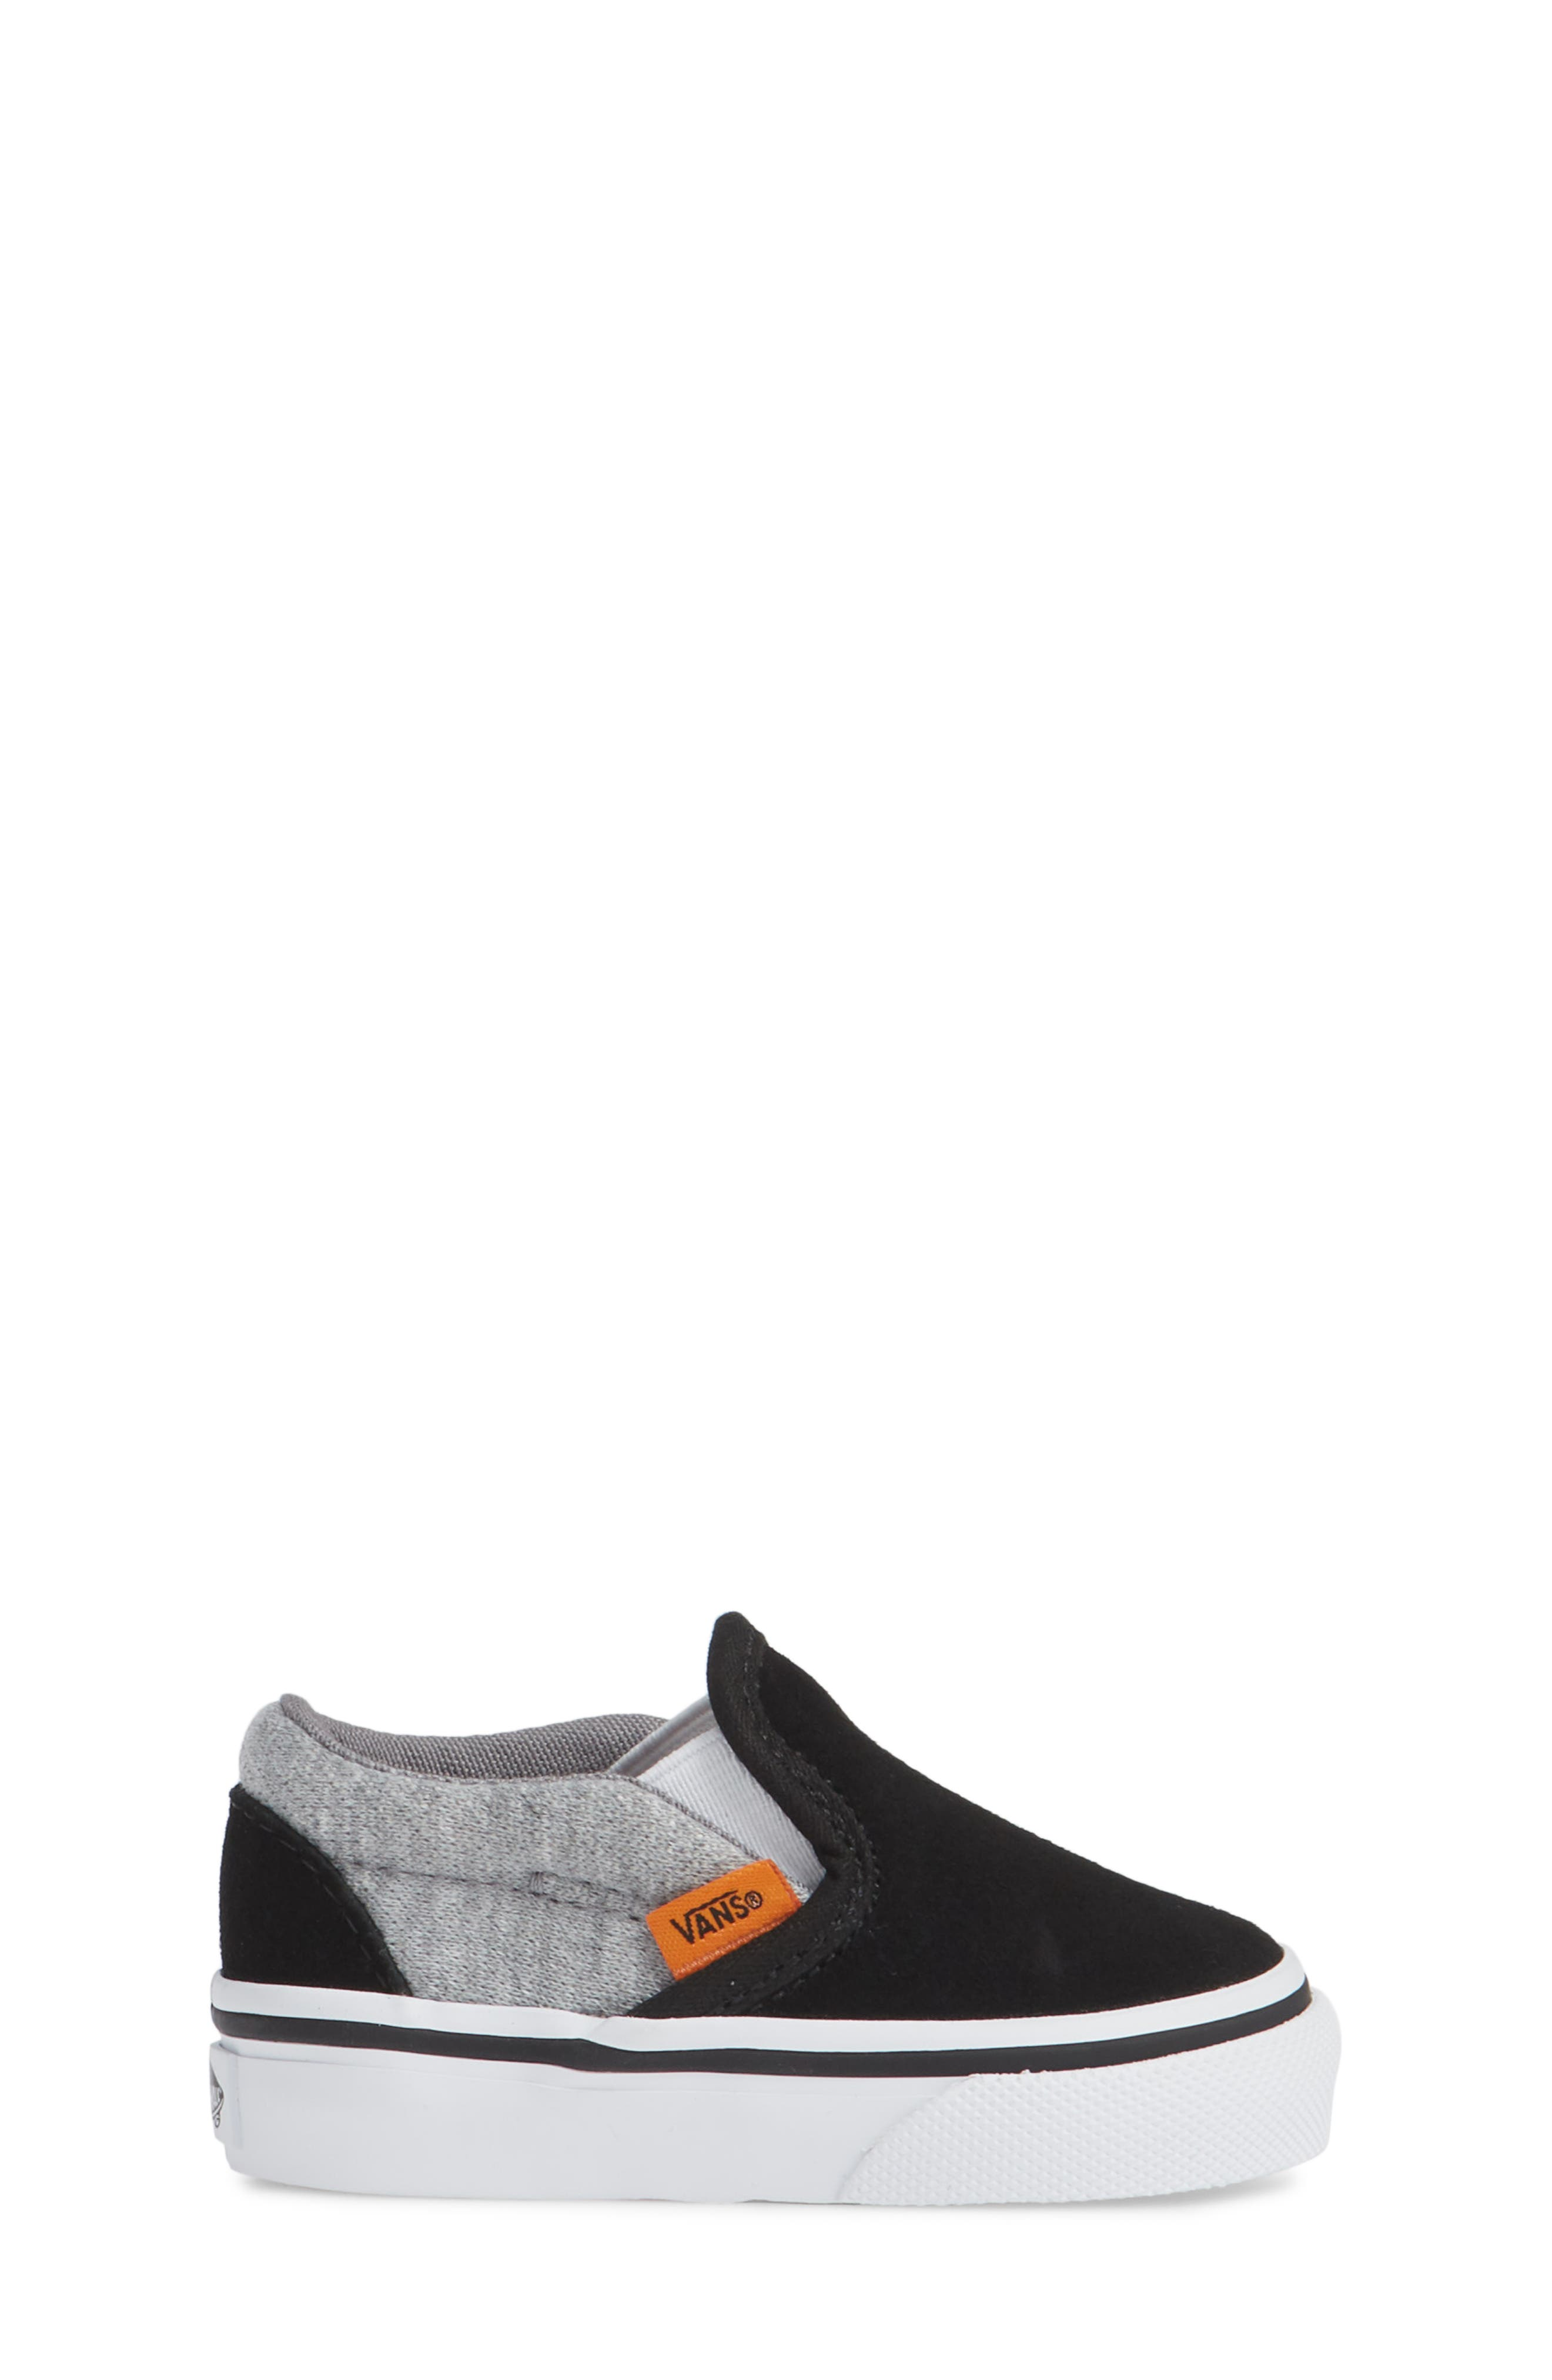 'Classic' Slip-On,                             Alternate thumbnail 3, color,                             SUEDE AND JERSEY GRAY/ BLACK